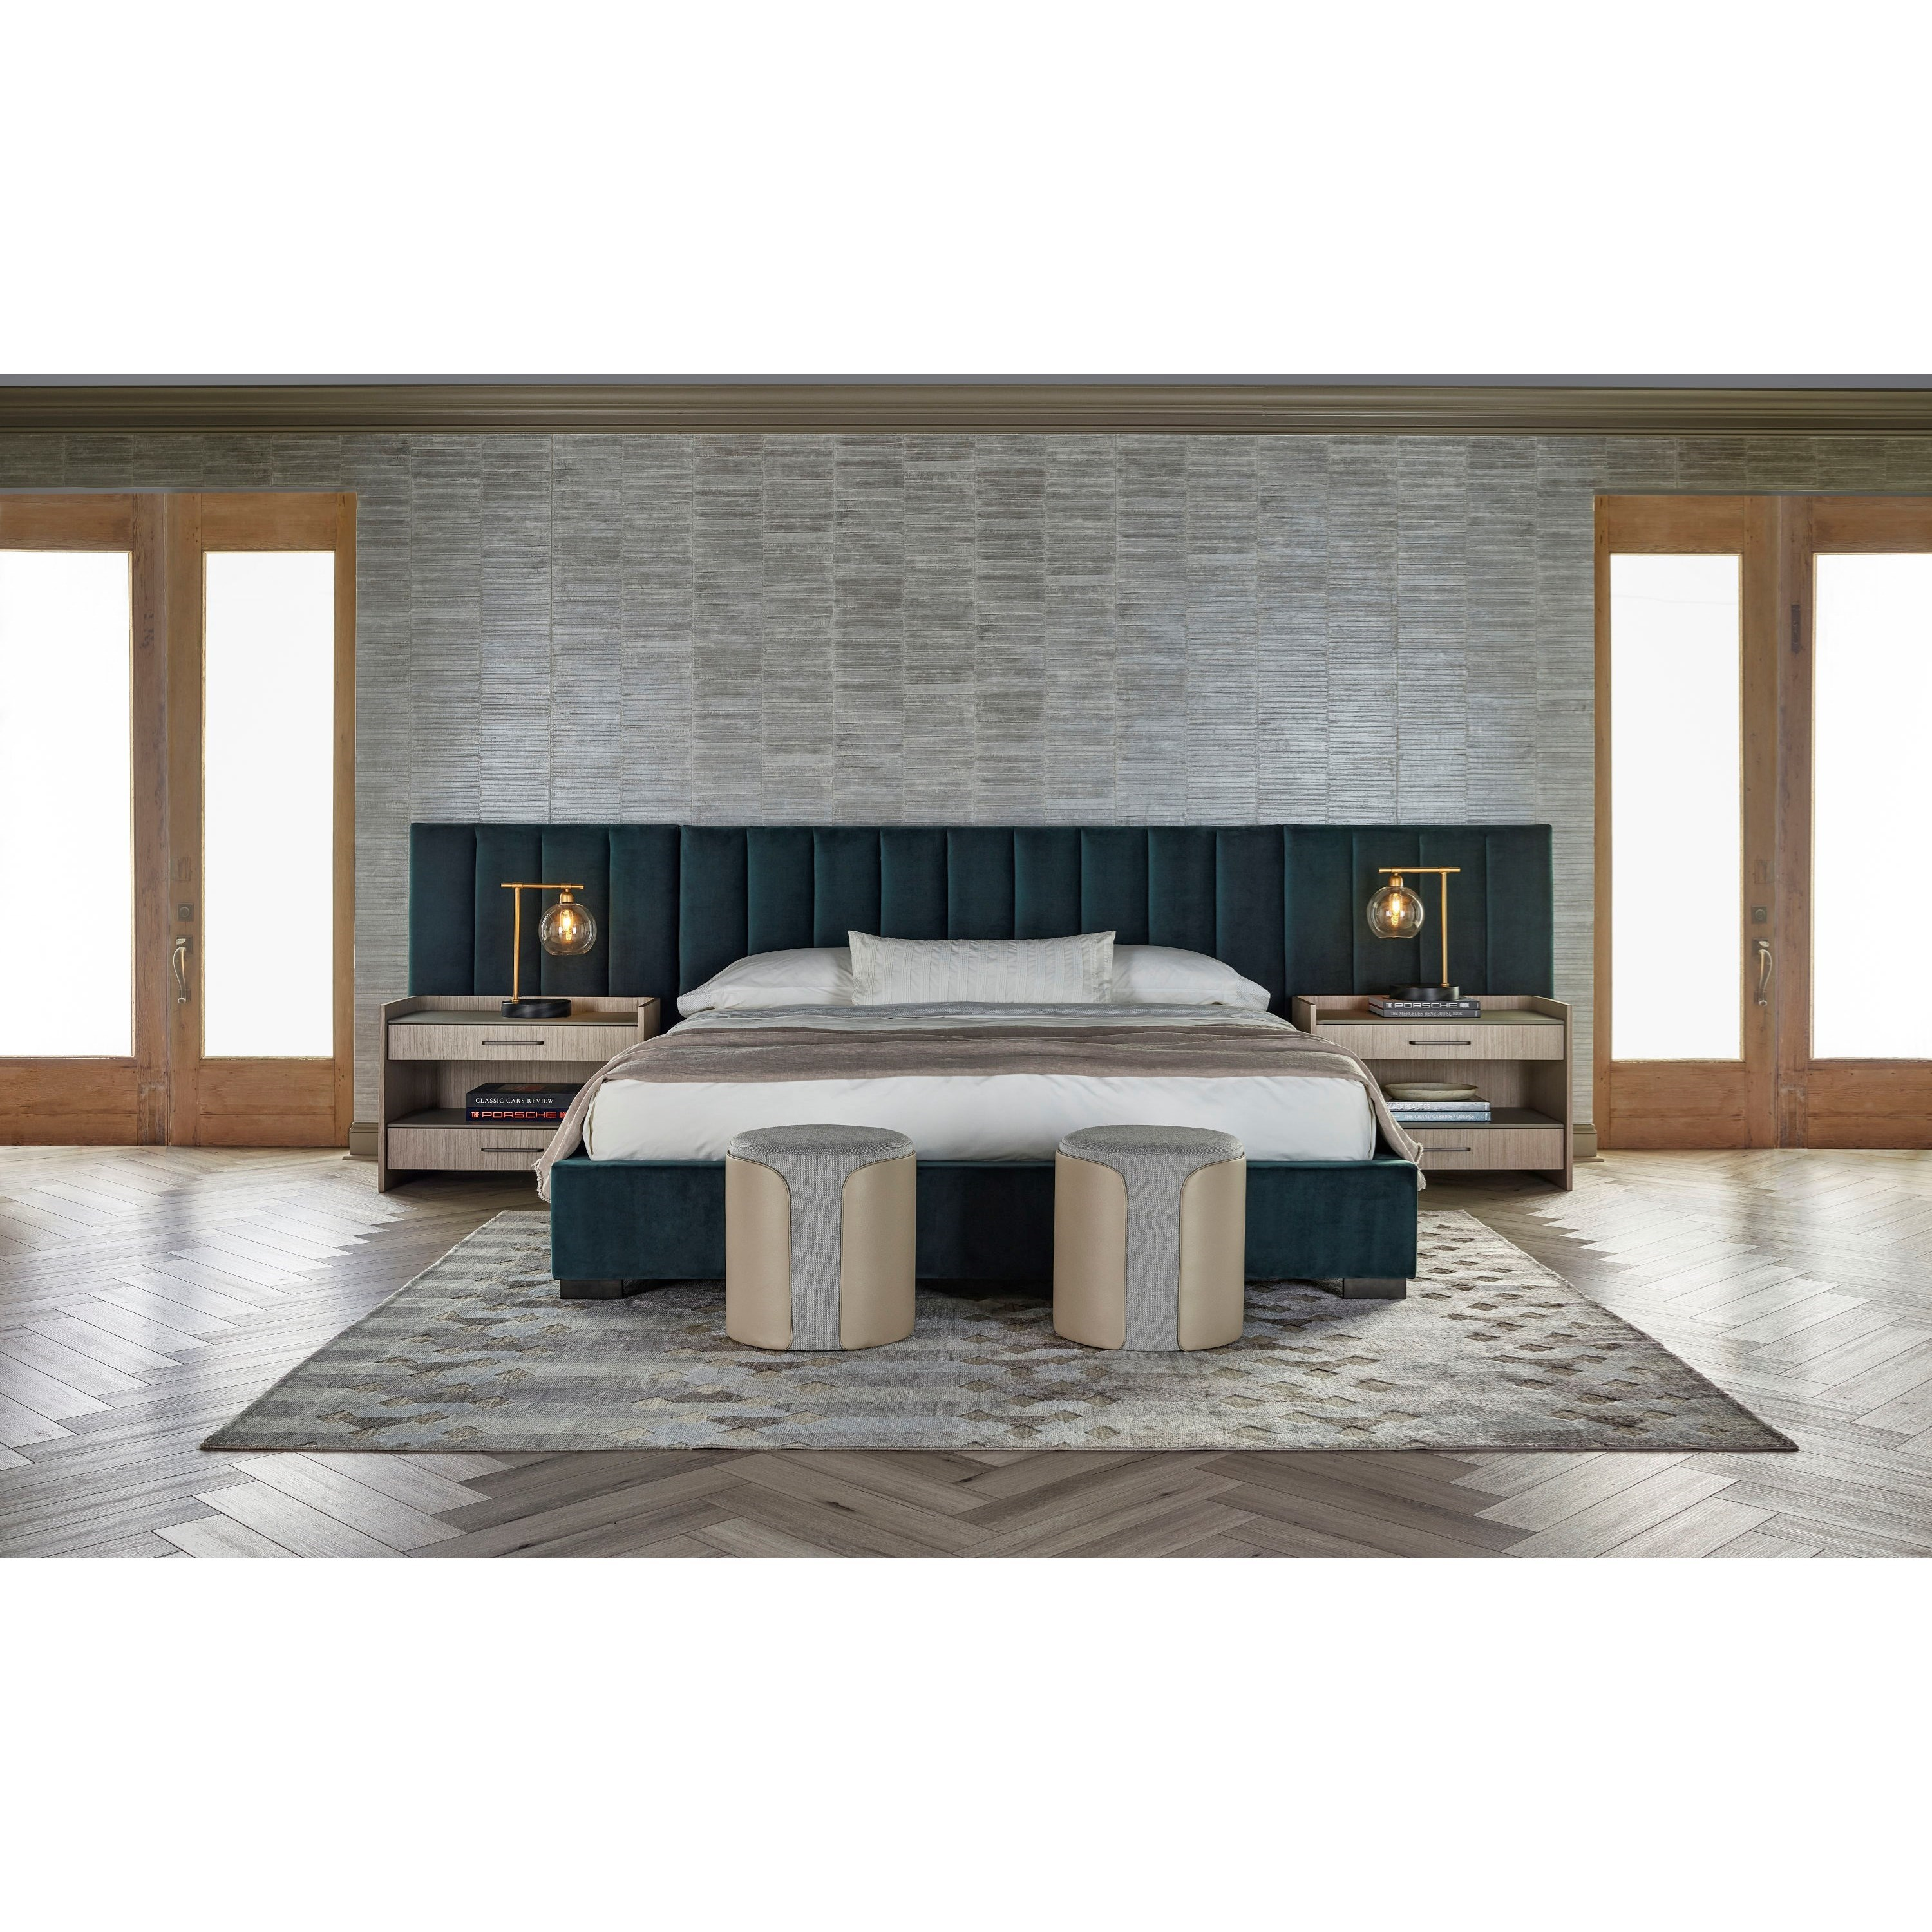 Nina Magon 941 Queen Bedroom Group by Universal at Baer's Furniture